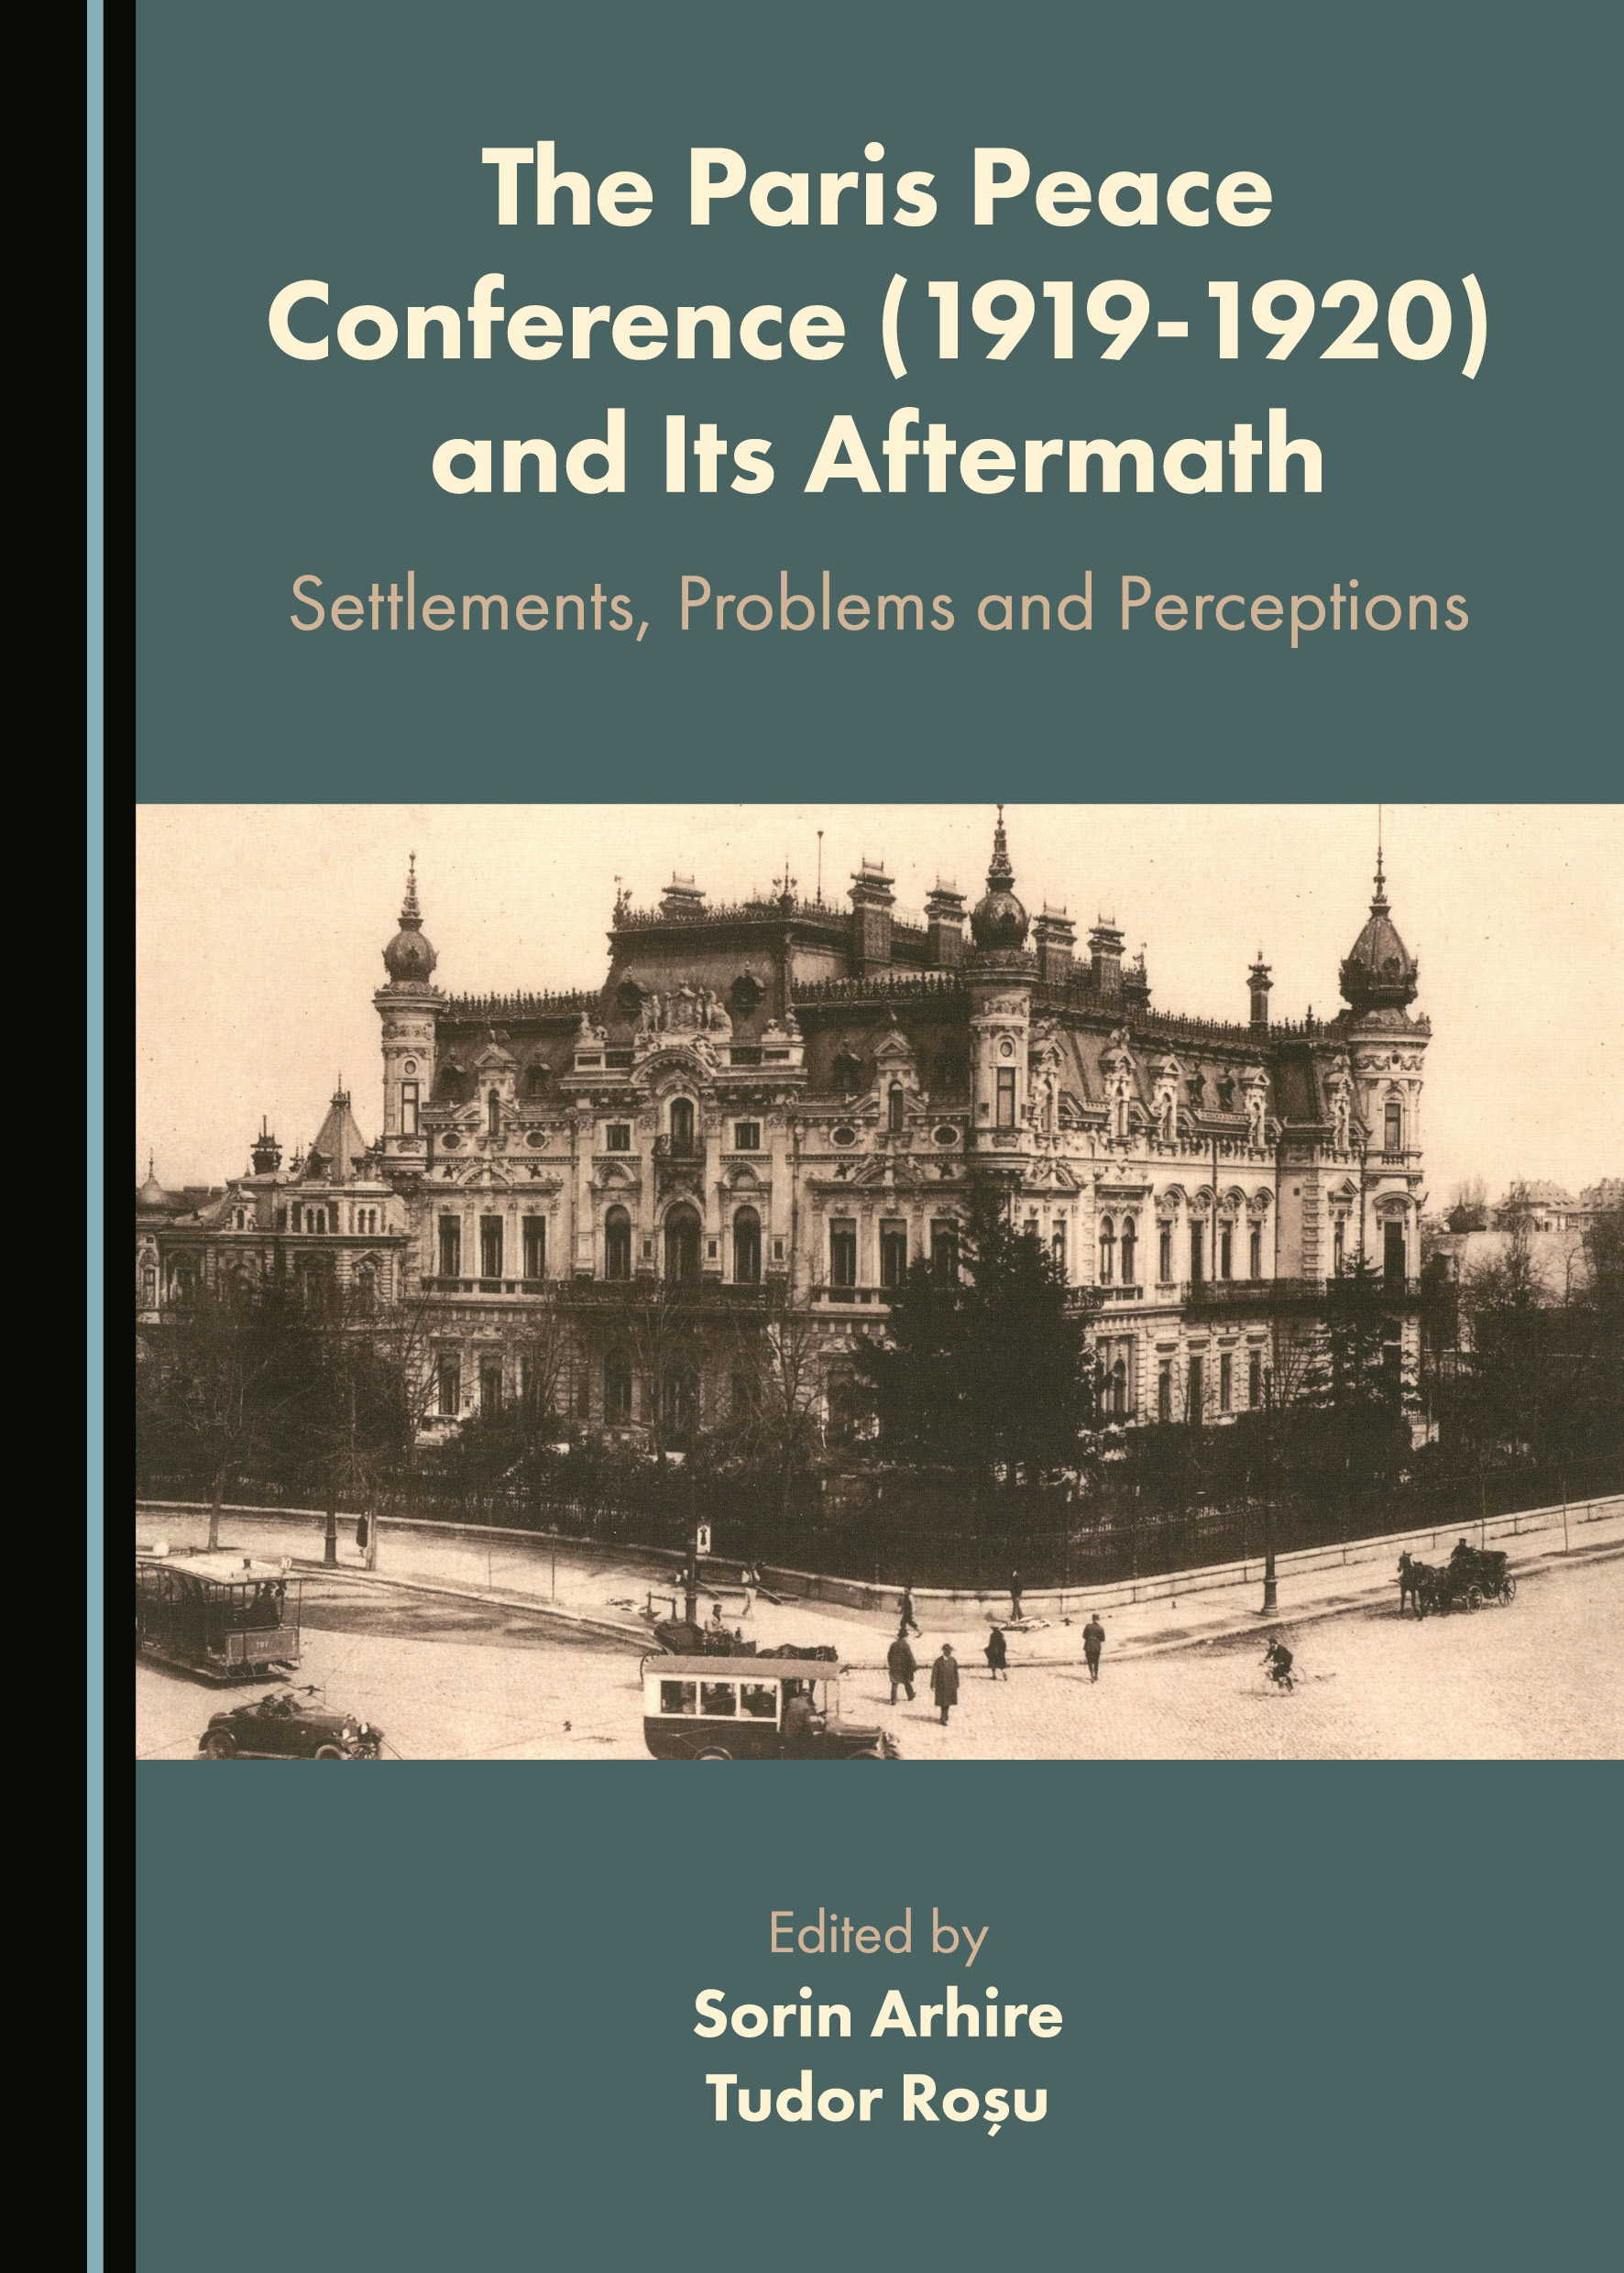 The Paris Peace Conference (1919-1920) and Its Aftermath: Settlements, Problems and Perceptions